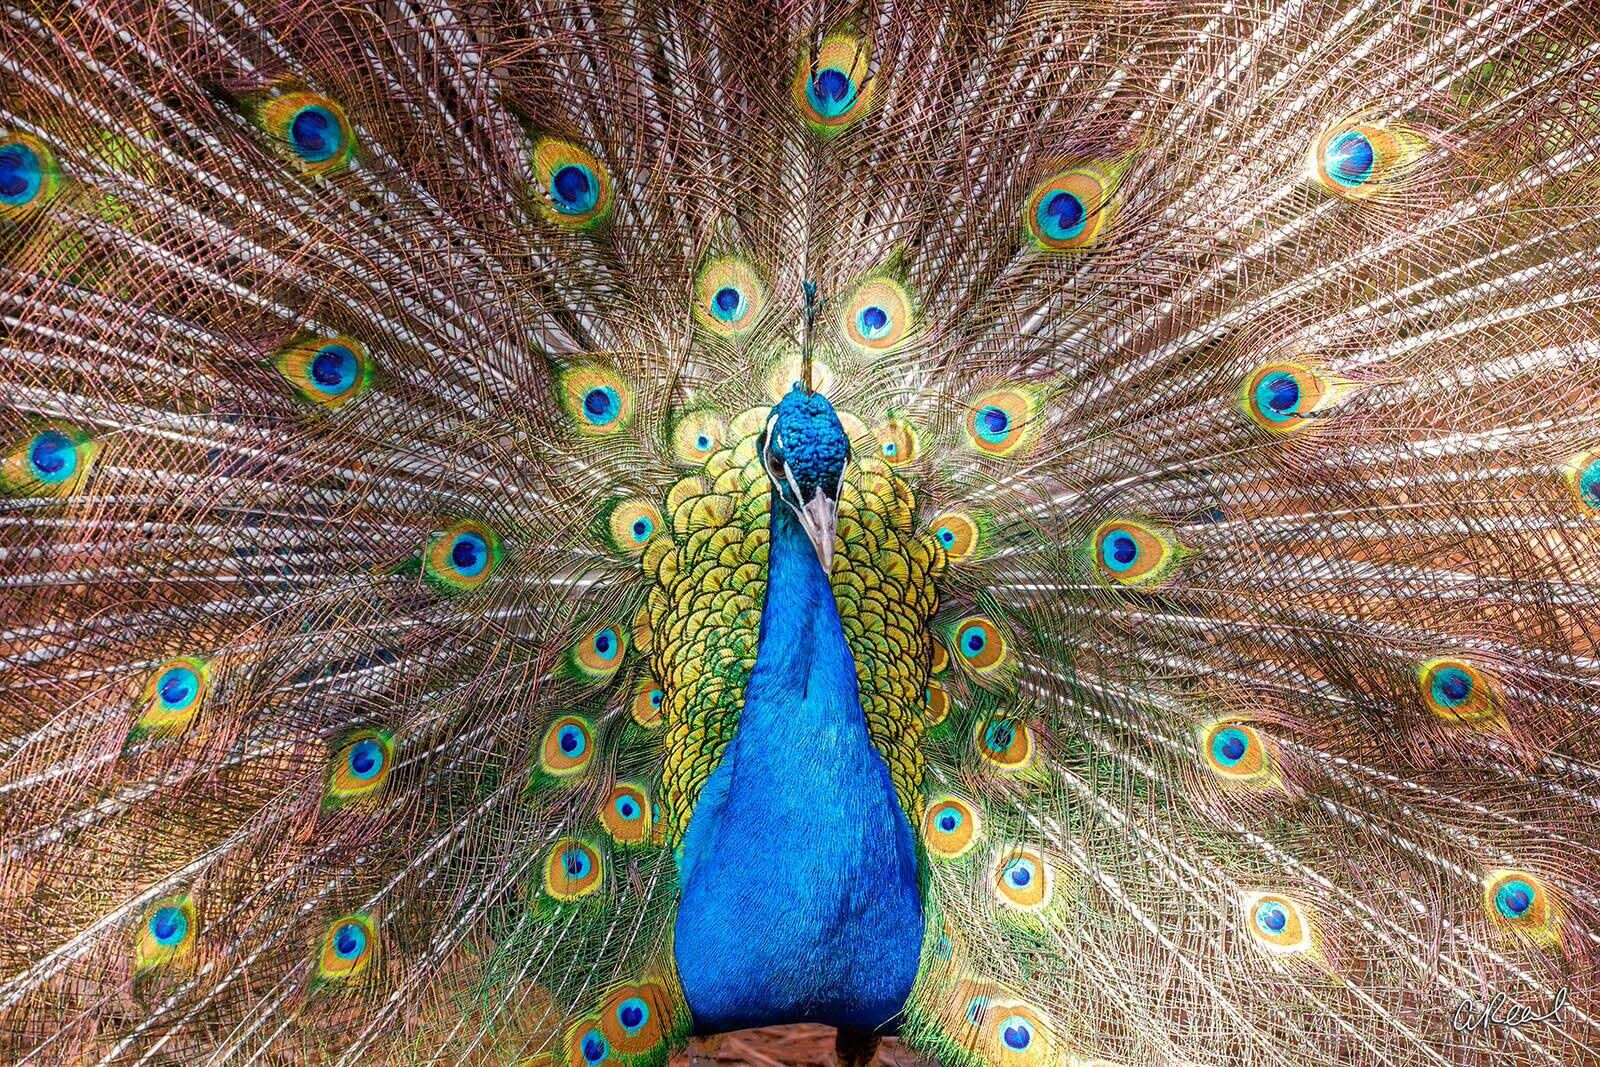 Peacock, Male, Feathers, Colorful, Fine Art, Limited Edition, Issaquah, Washington, Abstrct, photo